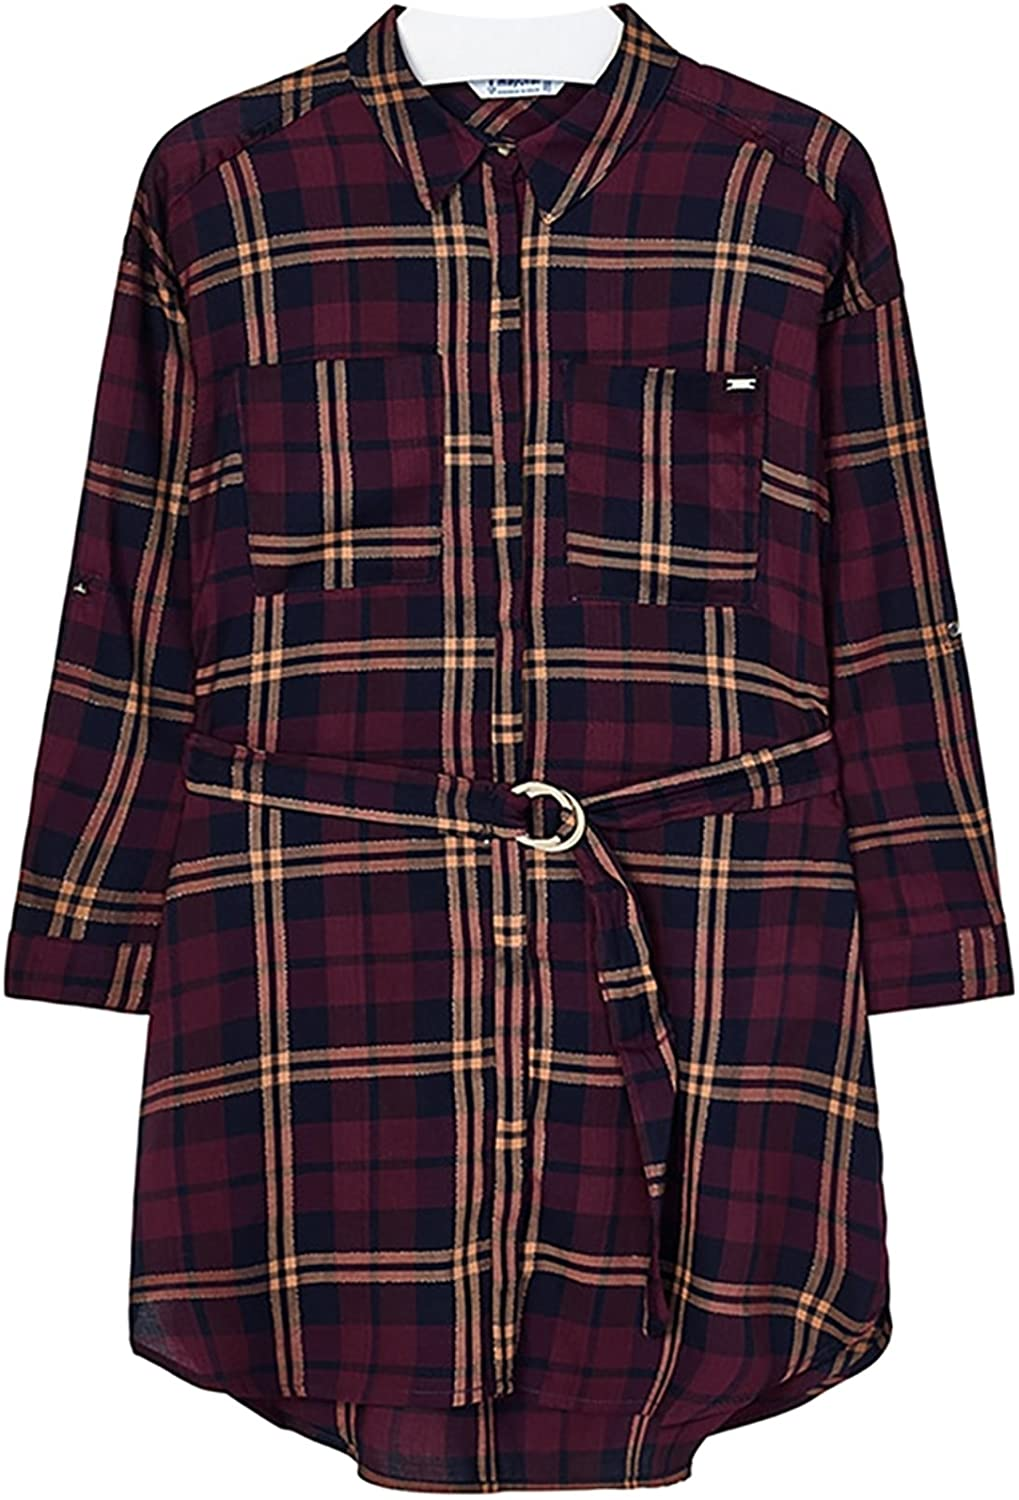 Mayoral Girls Burgundy Plaid Belted Dress : Sizes 14 to 18